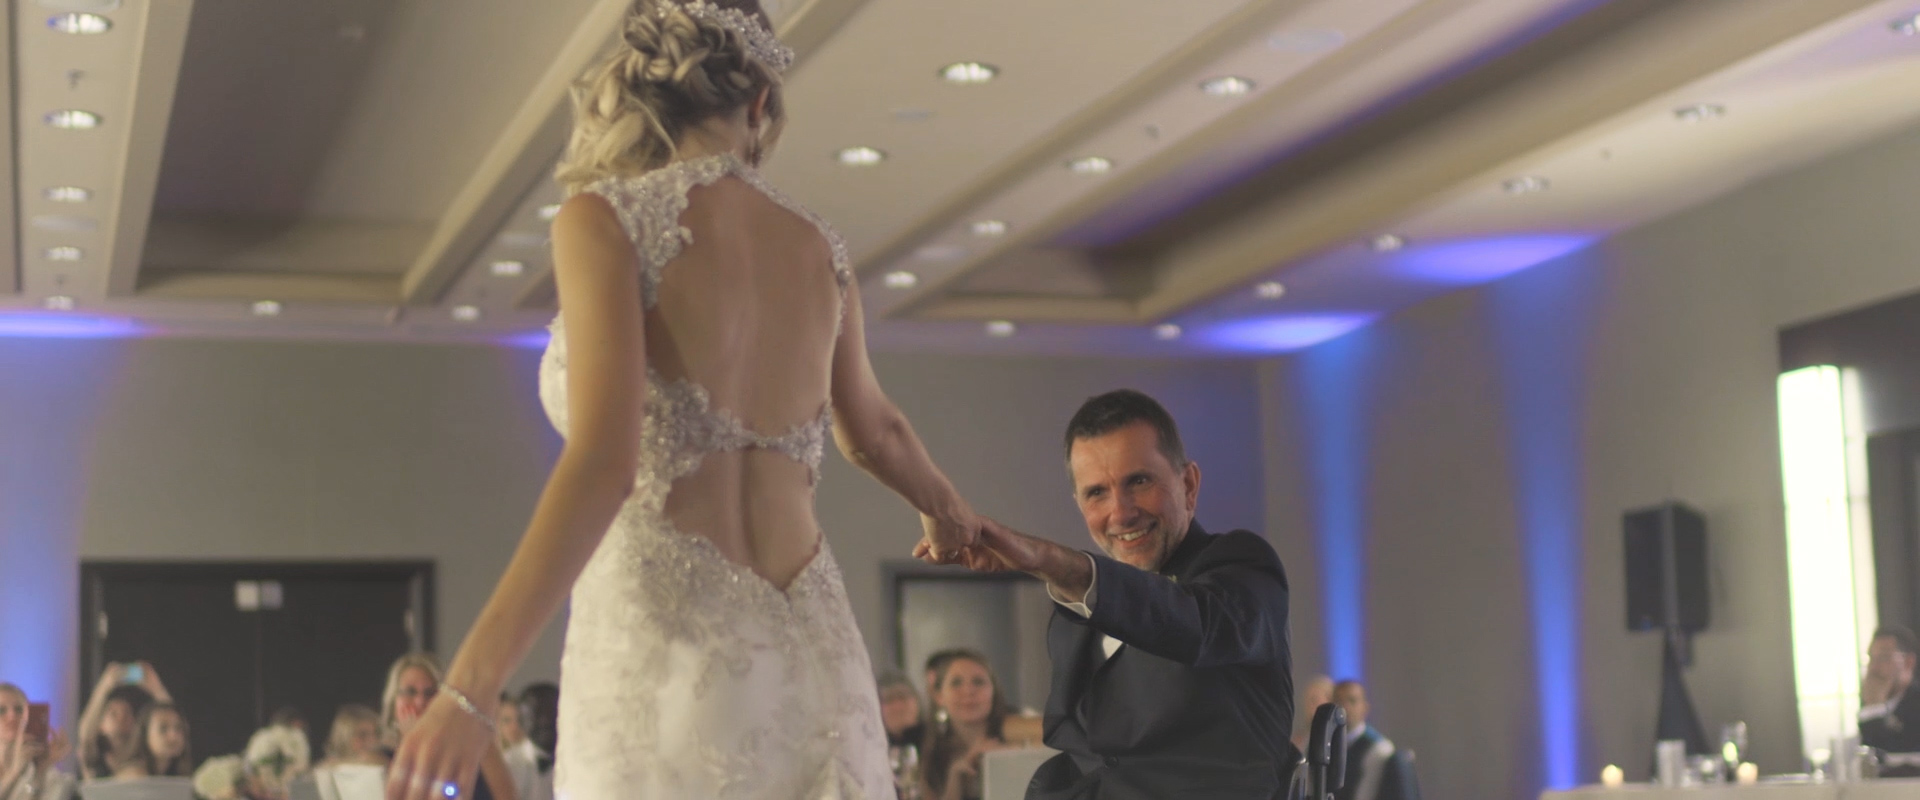 An image of a father and daughter dance at her wedding ceremony; taken from a Toronto Wedding Video